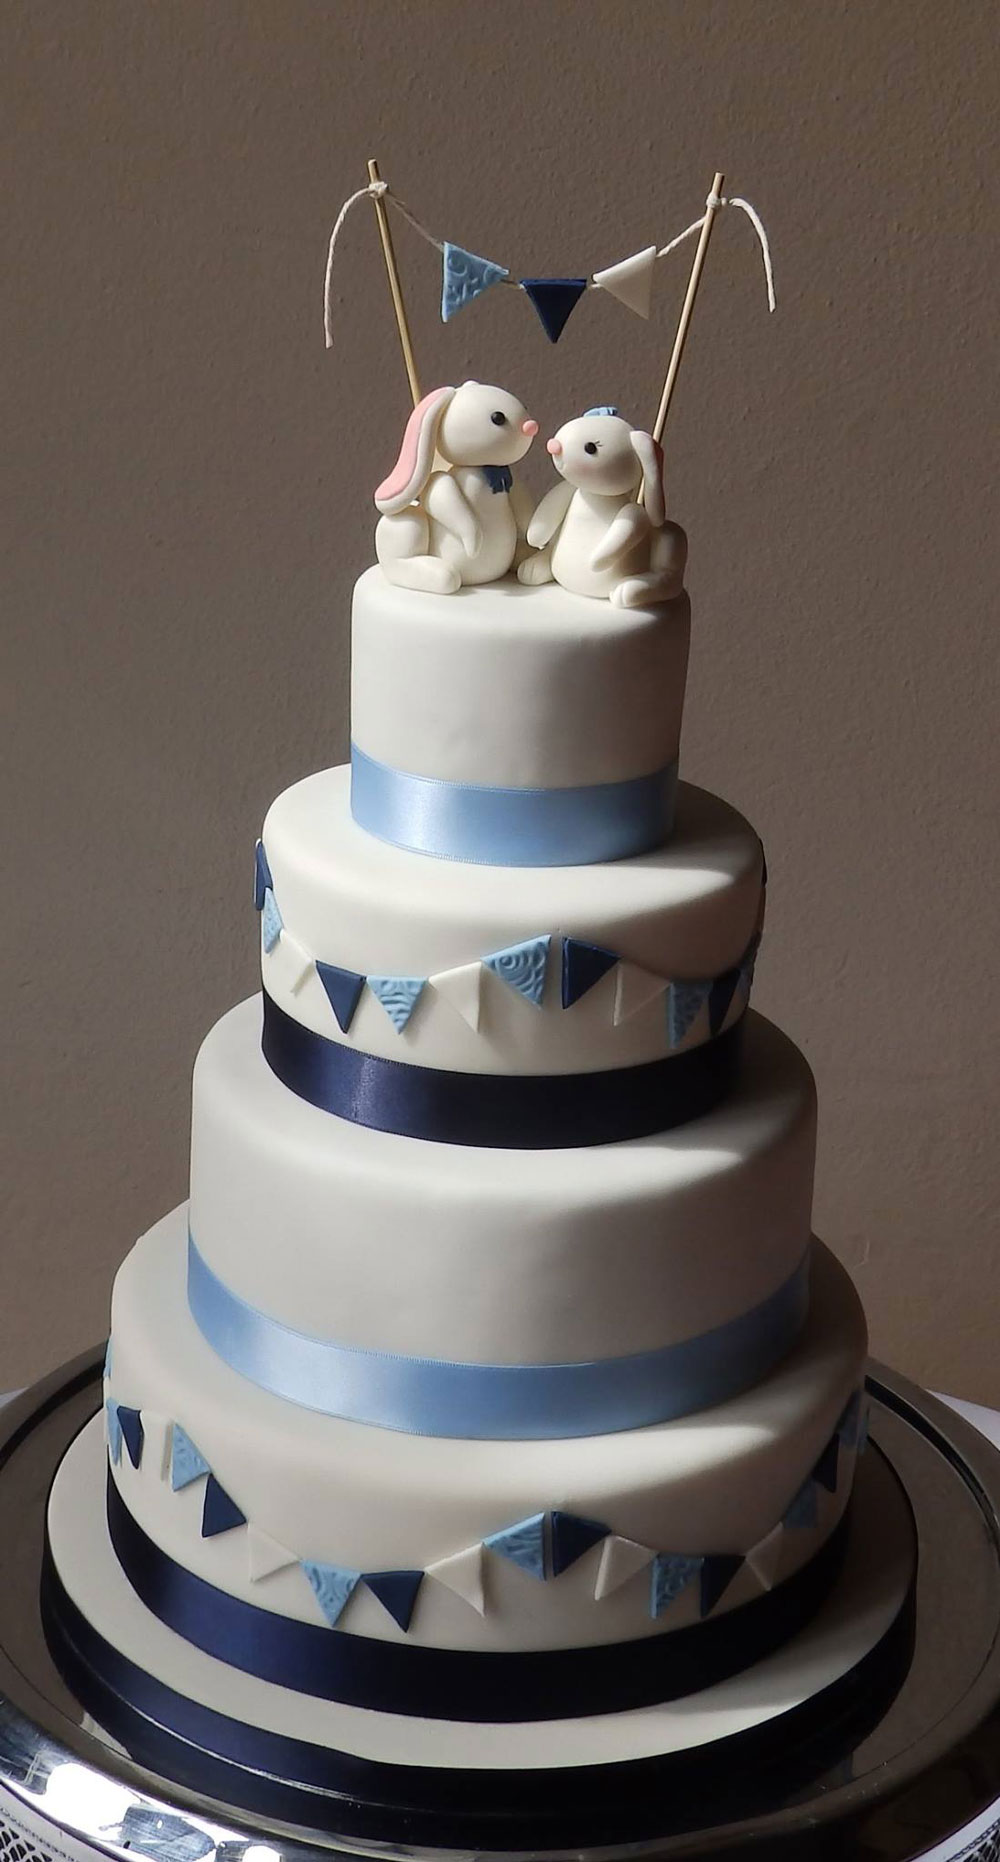 Cake with Personalised Bunny Toppers